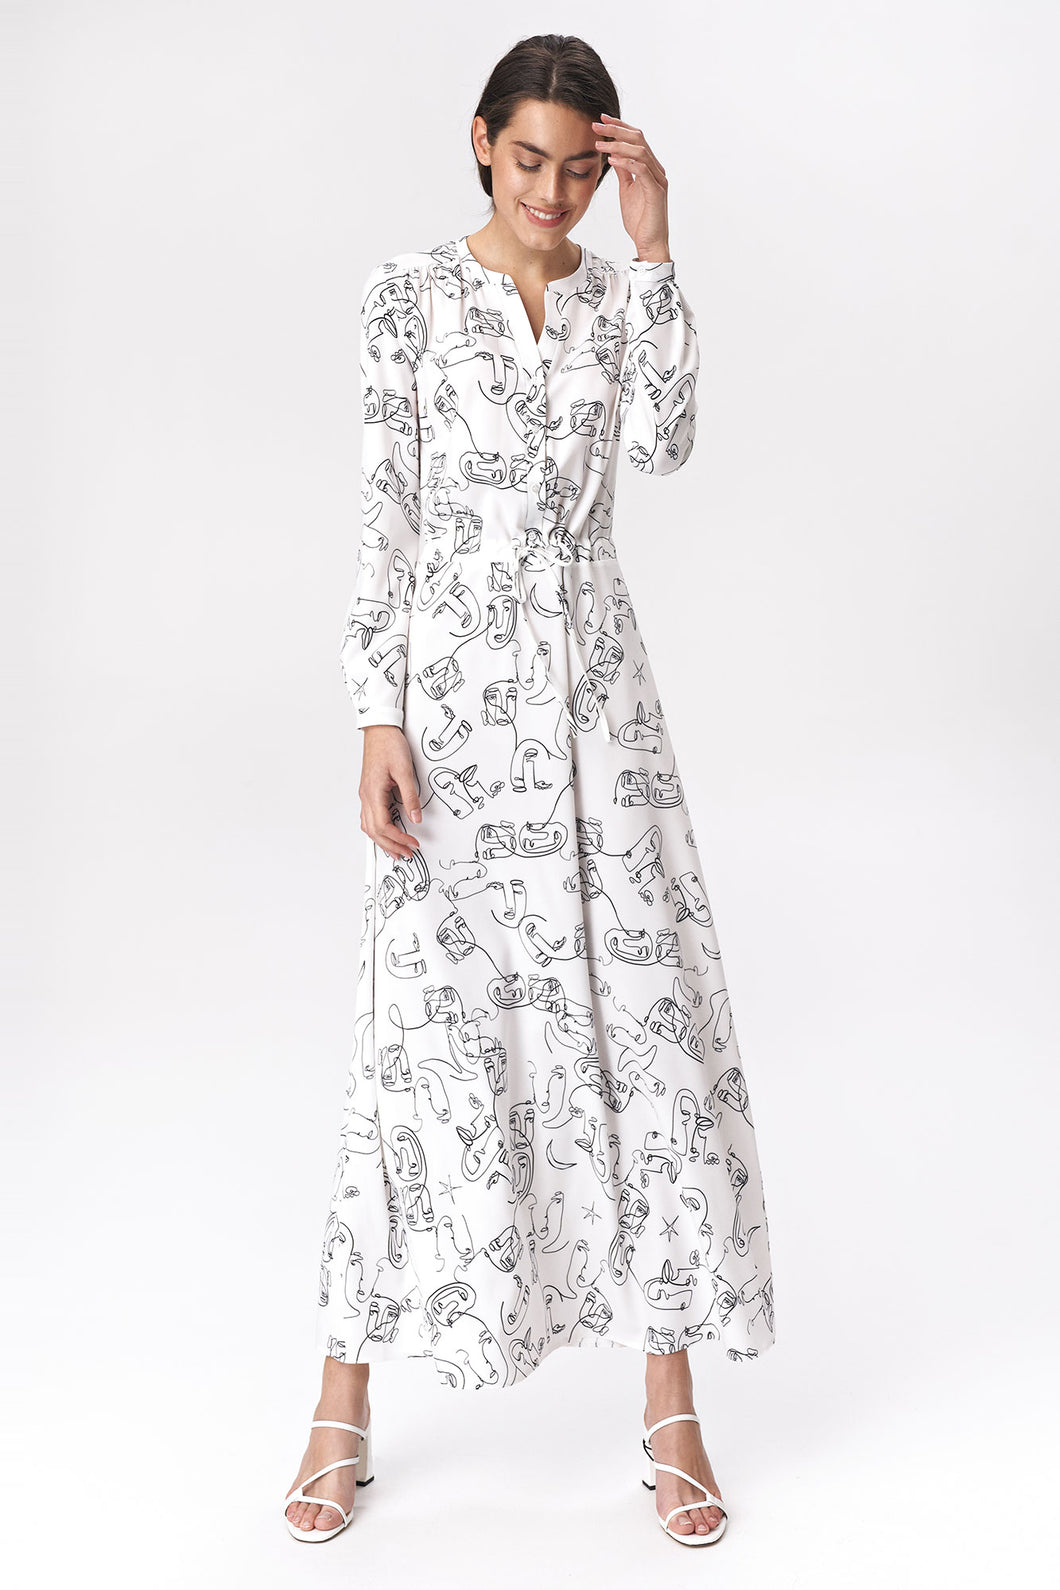 S140 Drawstring waist Shirt Maxi Dress In Face Print